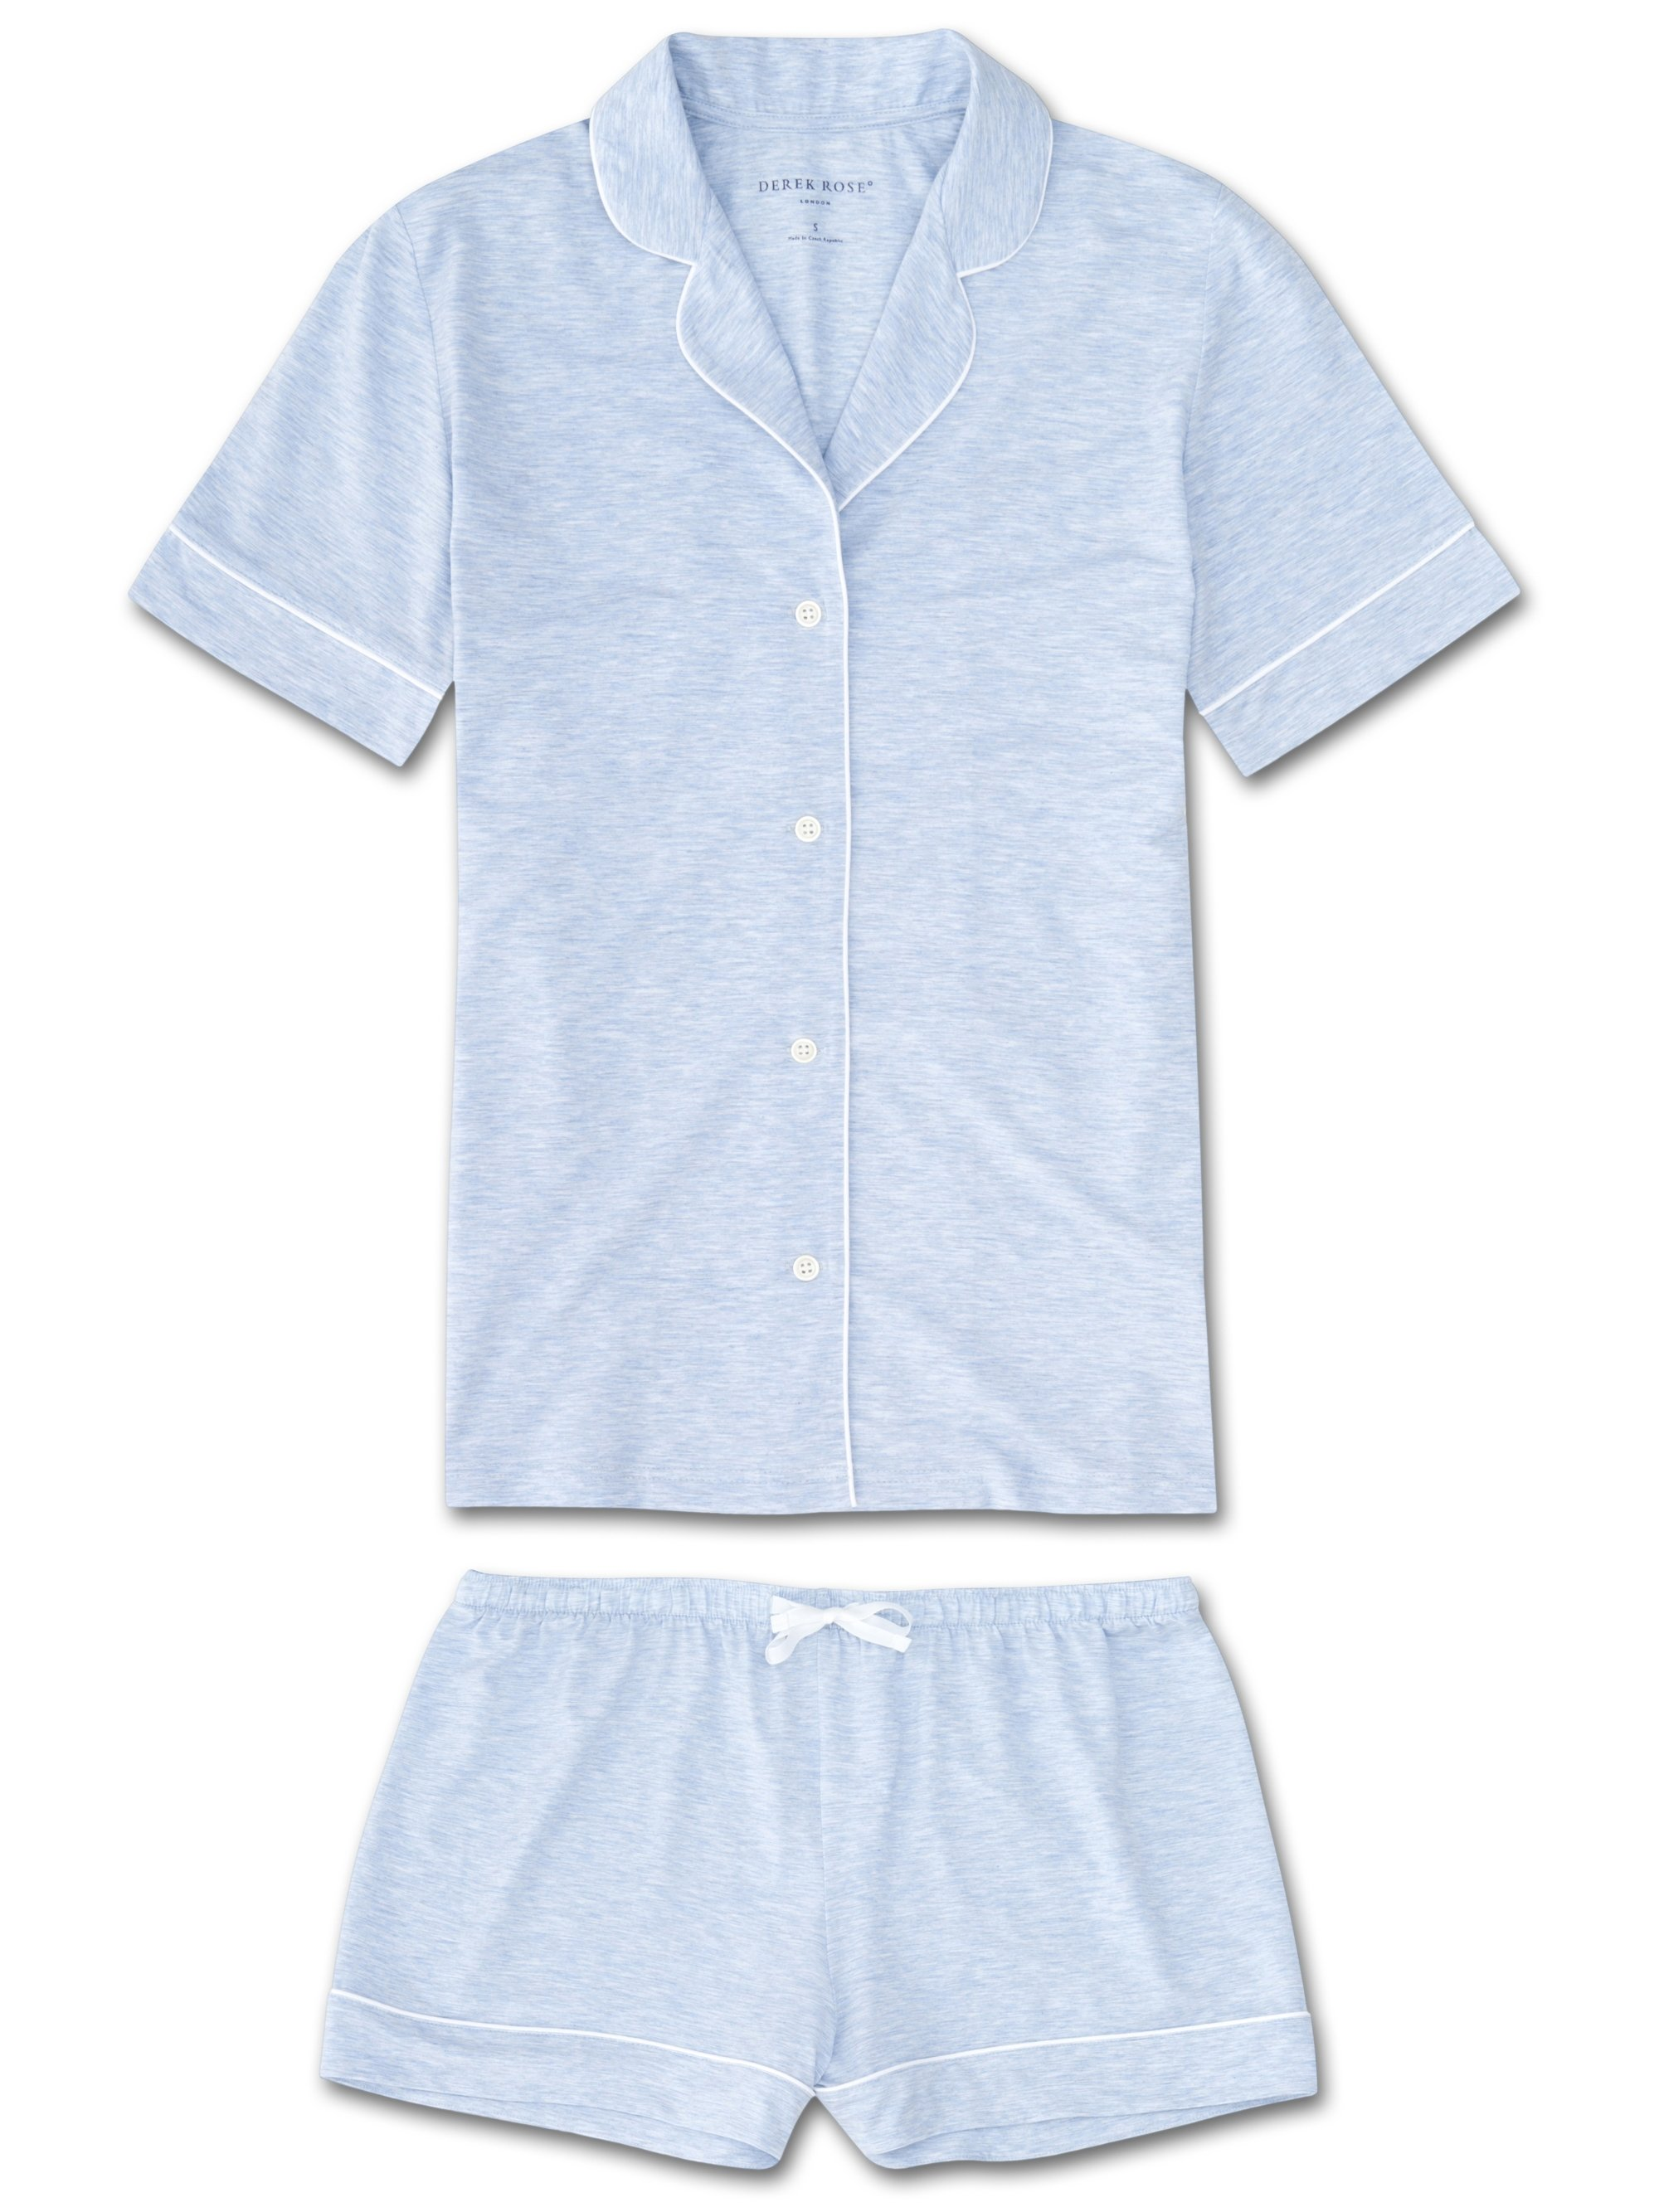 Women's Jersey Shortie Pyjamas Ethan Micro Modal Stretch Blue